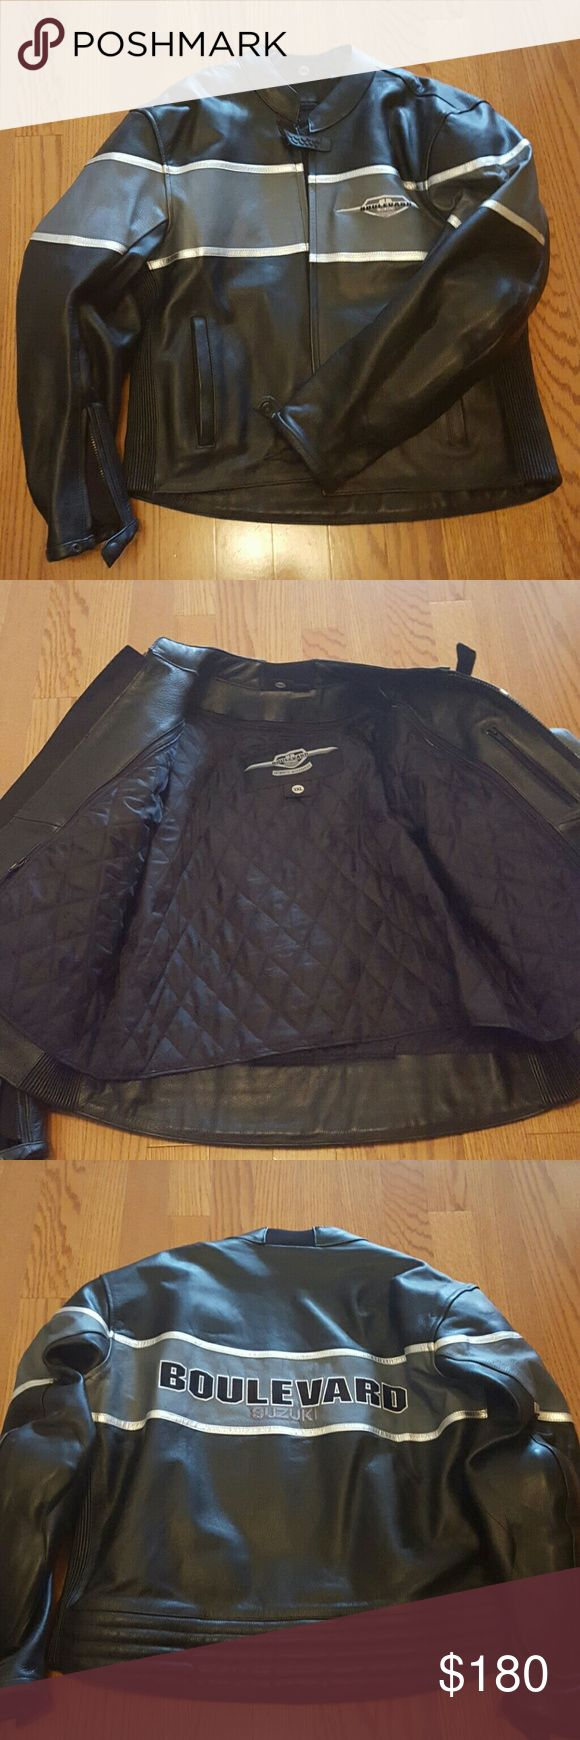 Men's Suzuki Motorcycle Jacket Used like new in excellent condition! Boulevard Suzuki Jackets & Coats